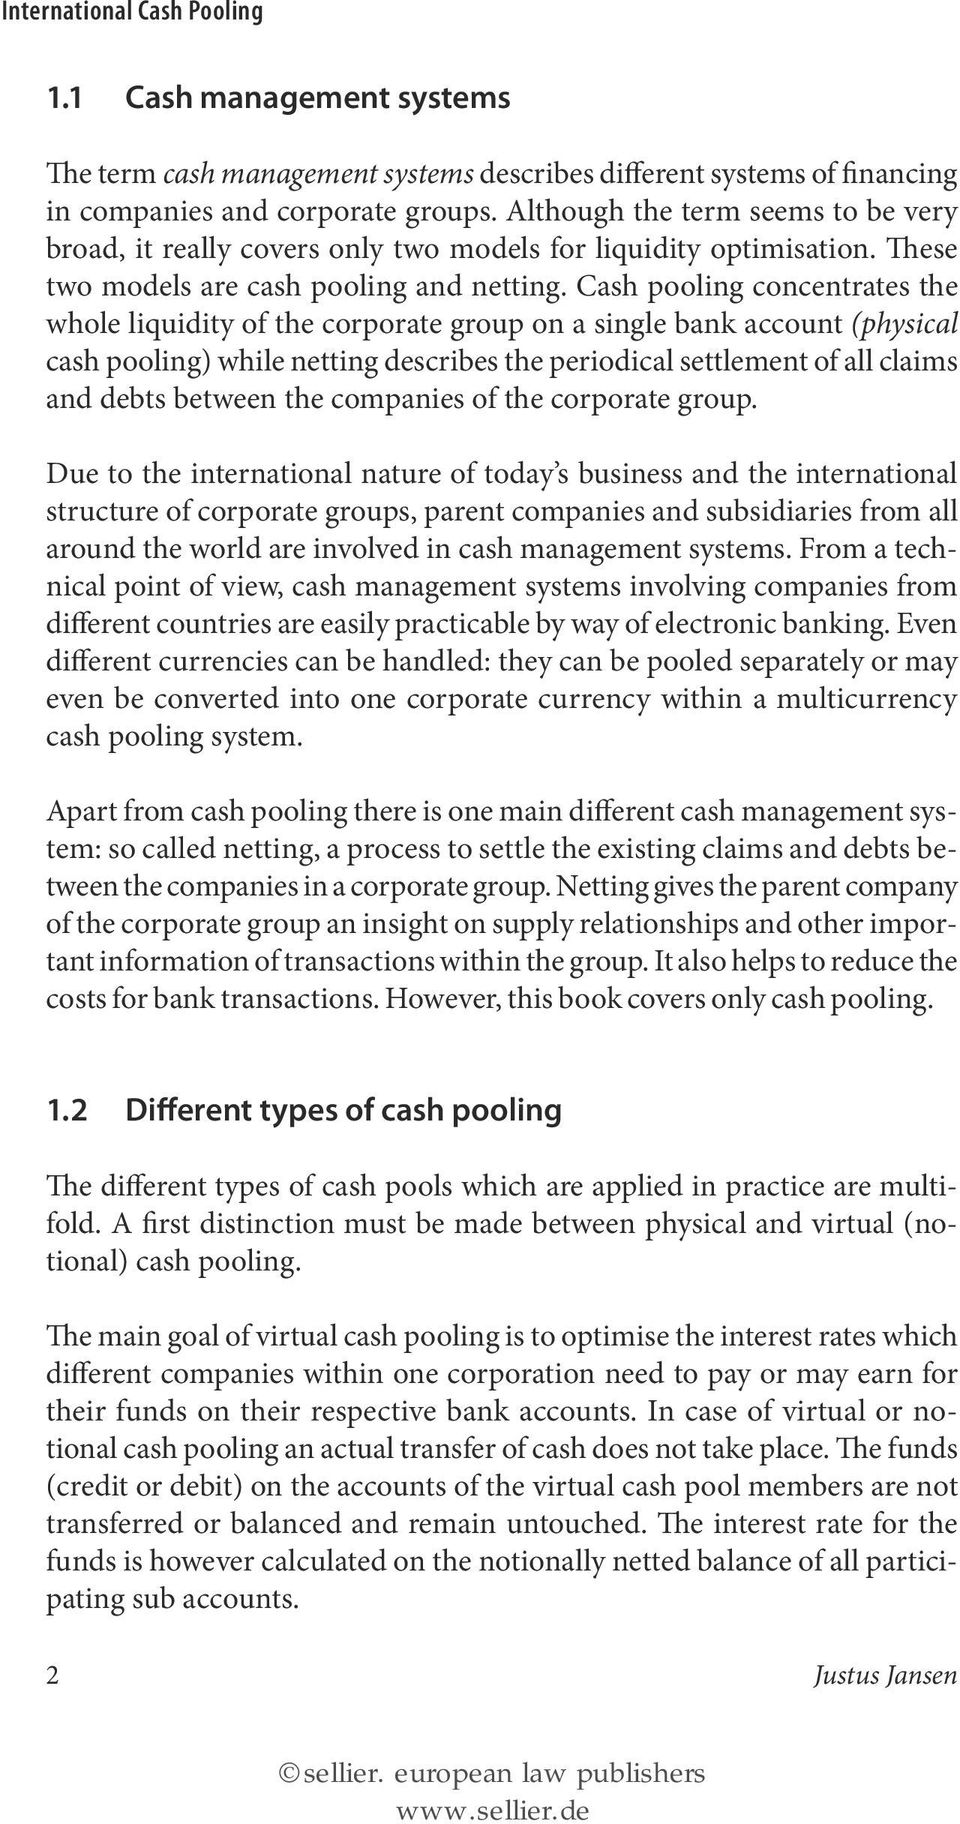 Cash pooling concentrates the whole liquidity of the corporate group on a single bank account (physical cash pooling) while netting describes the periodical settlement of all claims and debts between